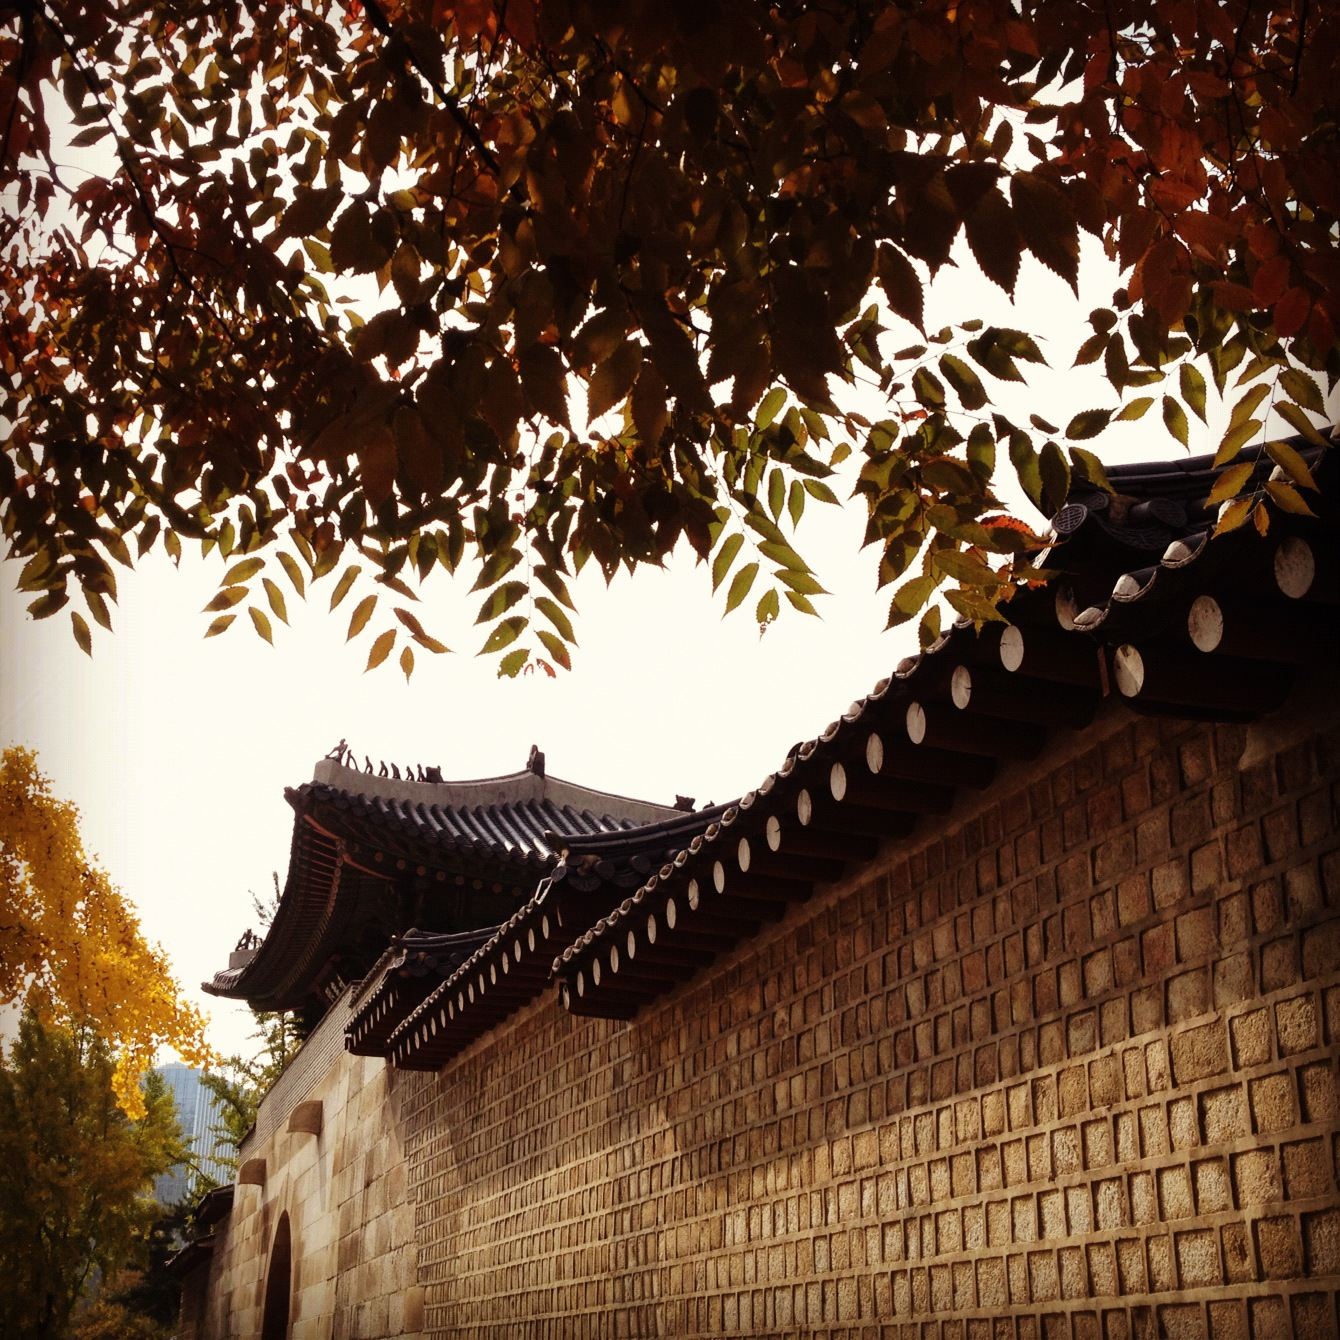 Autumn in Seoul, outside the walls of Gyeongbokgung Palace